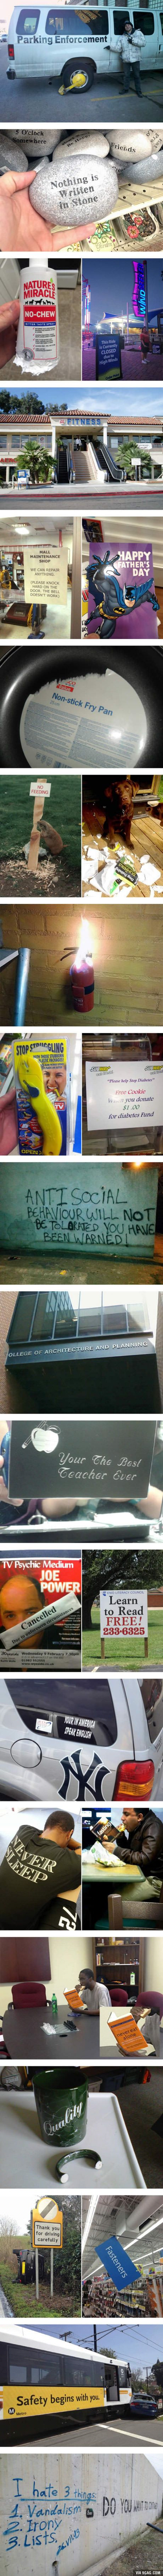 27 Hilarious Examples of Irony